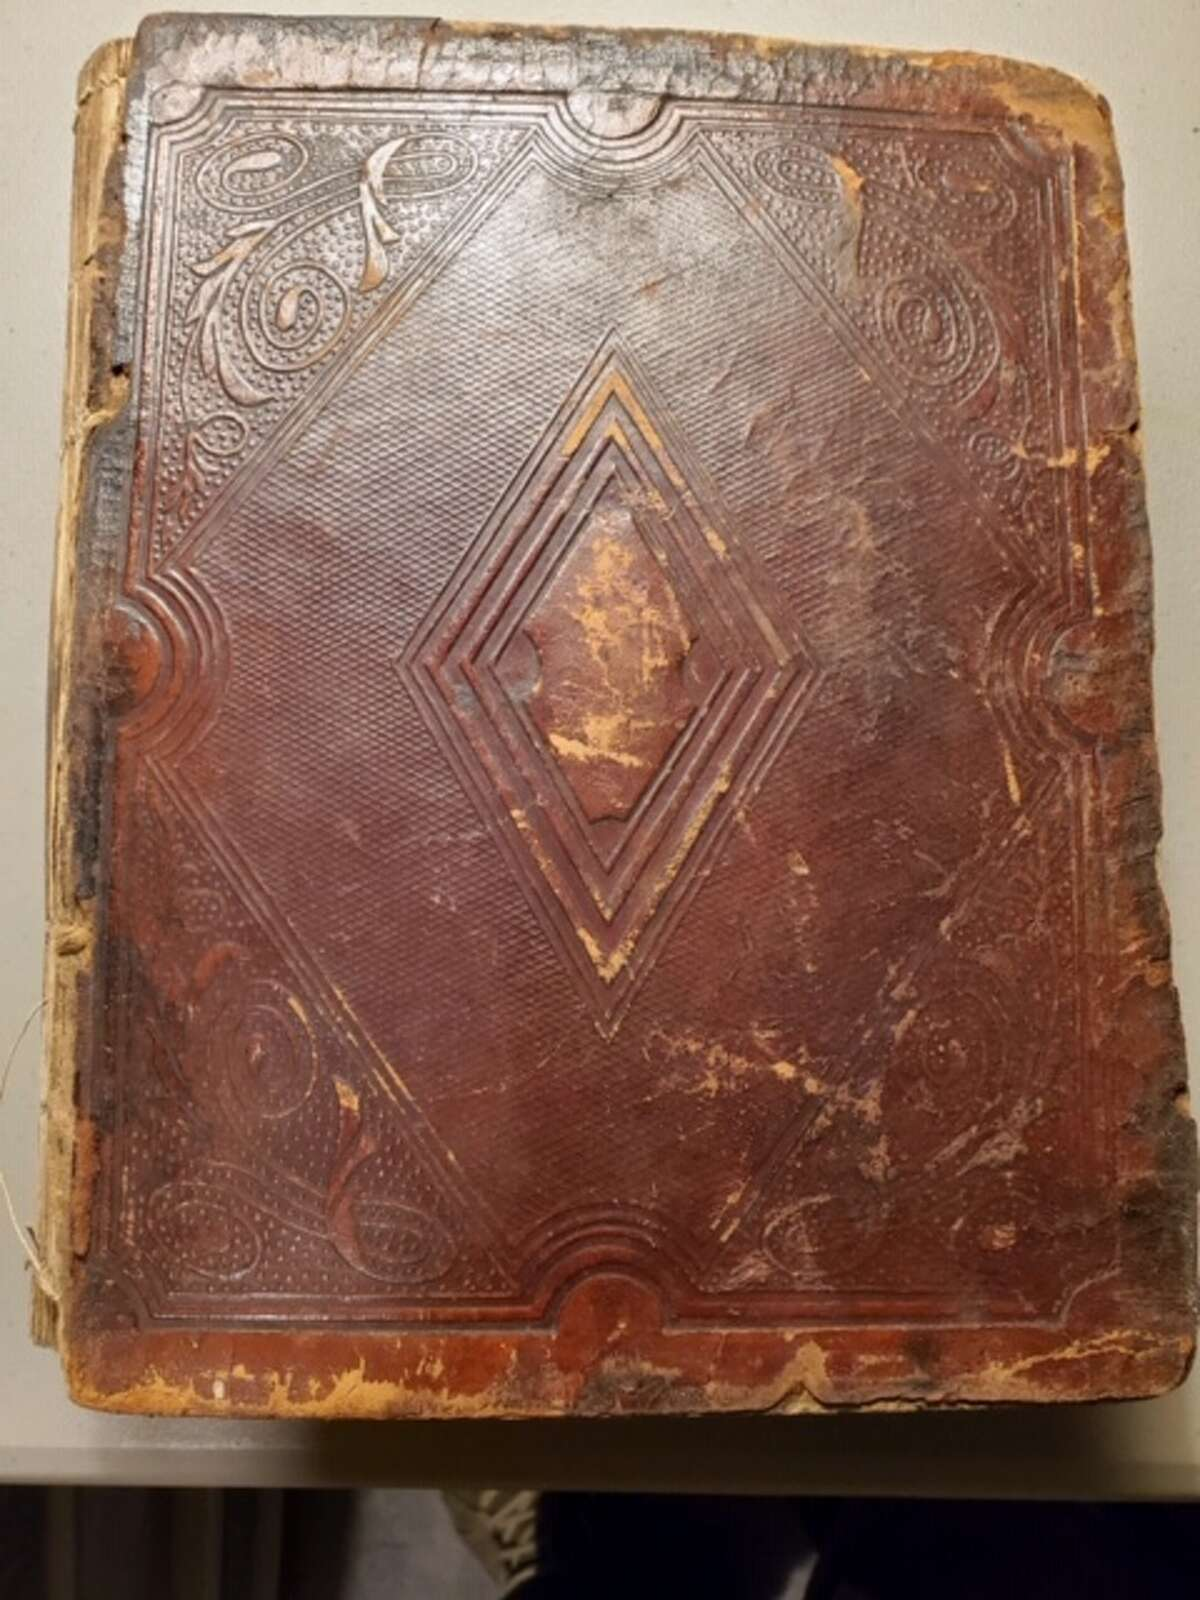 This 19th-century Corning family Bible was found in a Cleveland landfill nearly 50 years ago and preserved by a retired Navy chaplain who hopes to return it to the family or the Albany Institute